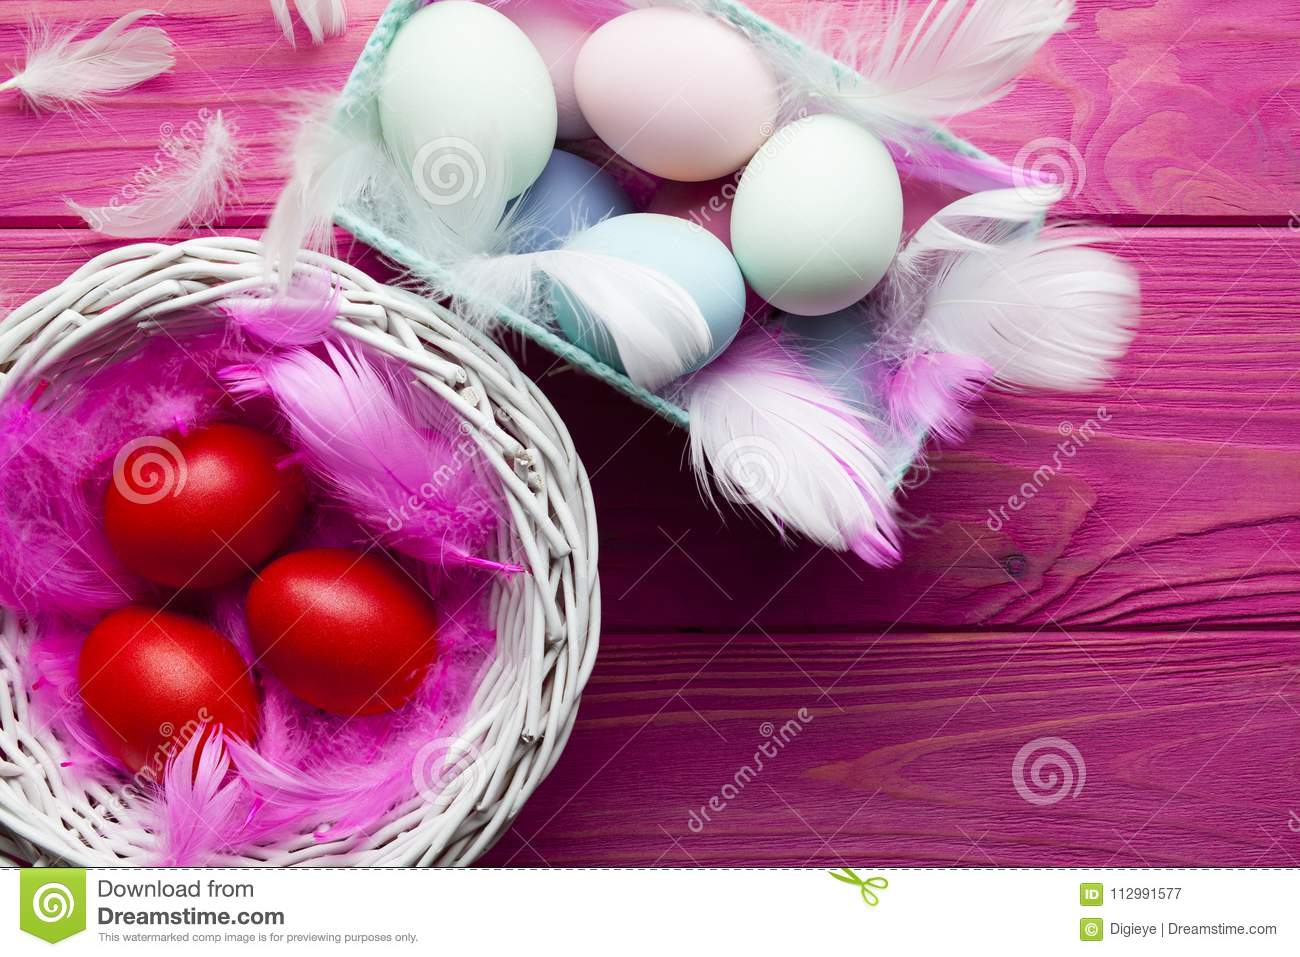 Colored Easter eggs, feathers and baskets on pink background